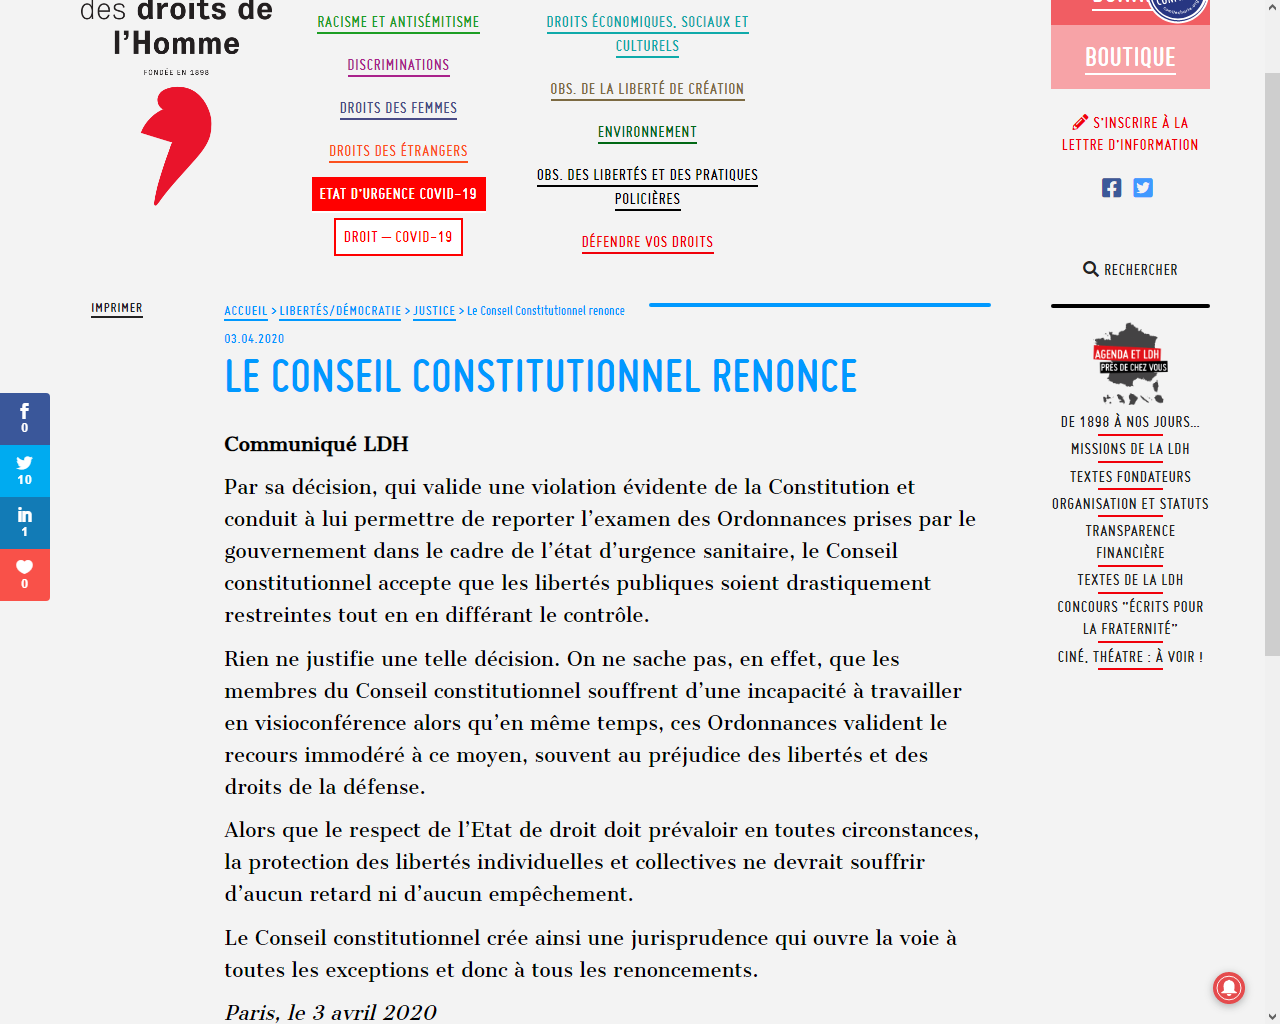 https://www.ldh-france.org/le-conseil-constitutionnel-renonce/